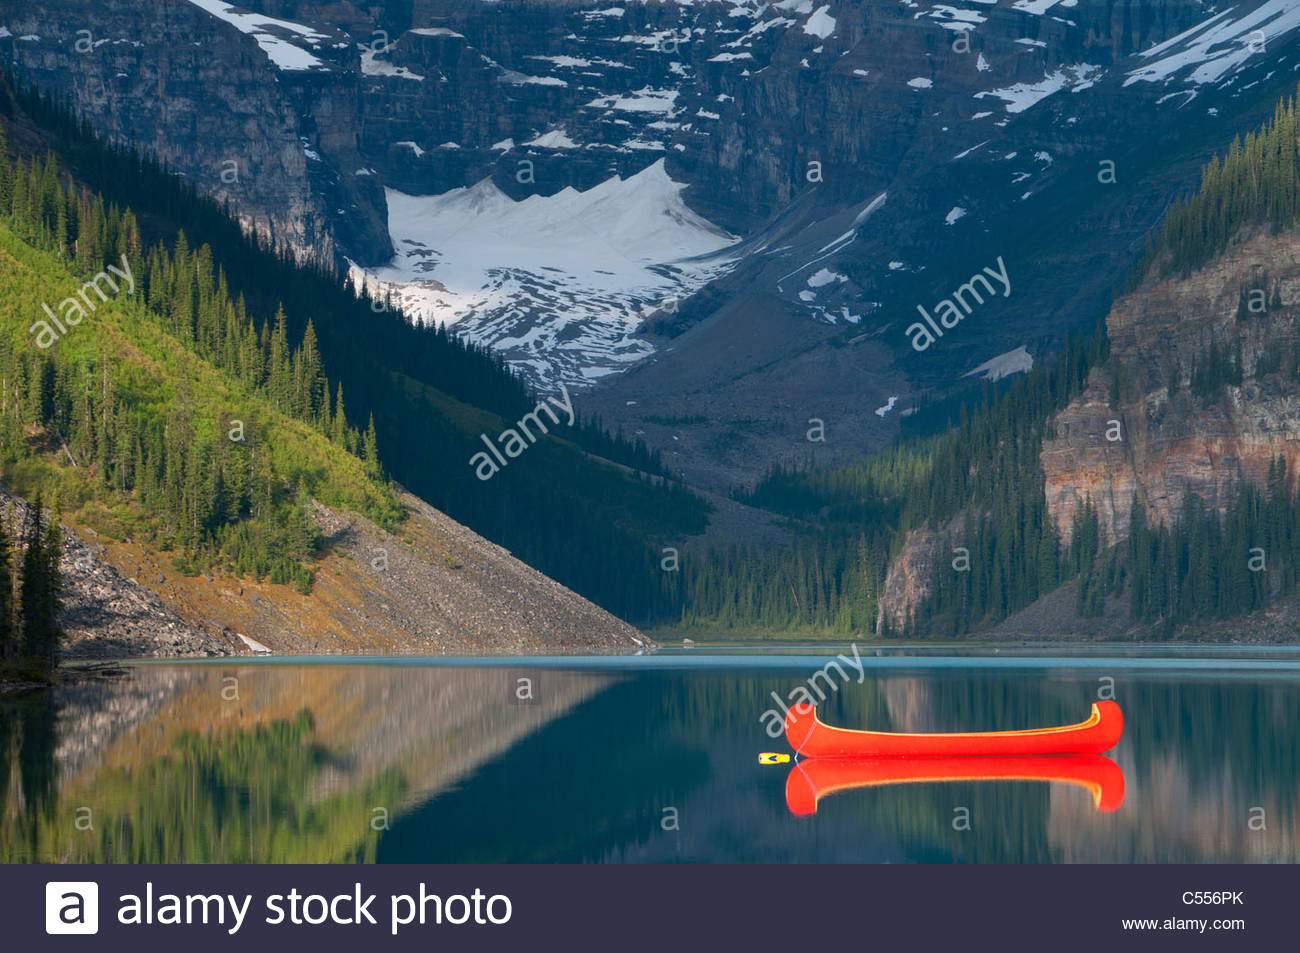 Red Canoe dans le lac, Lake Louise, Banff National Park, Alberta, Canada Photo Stock